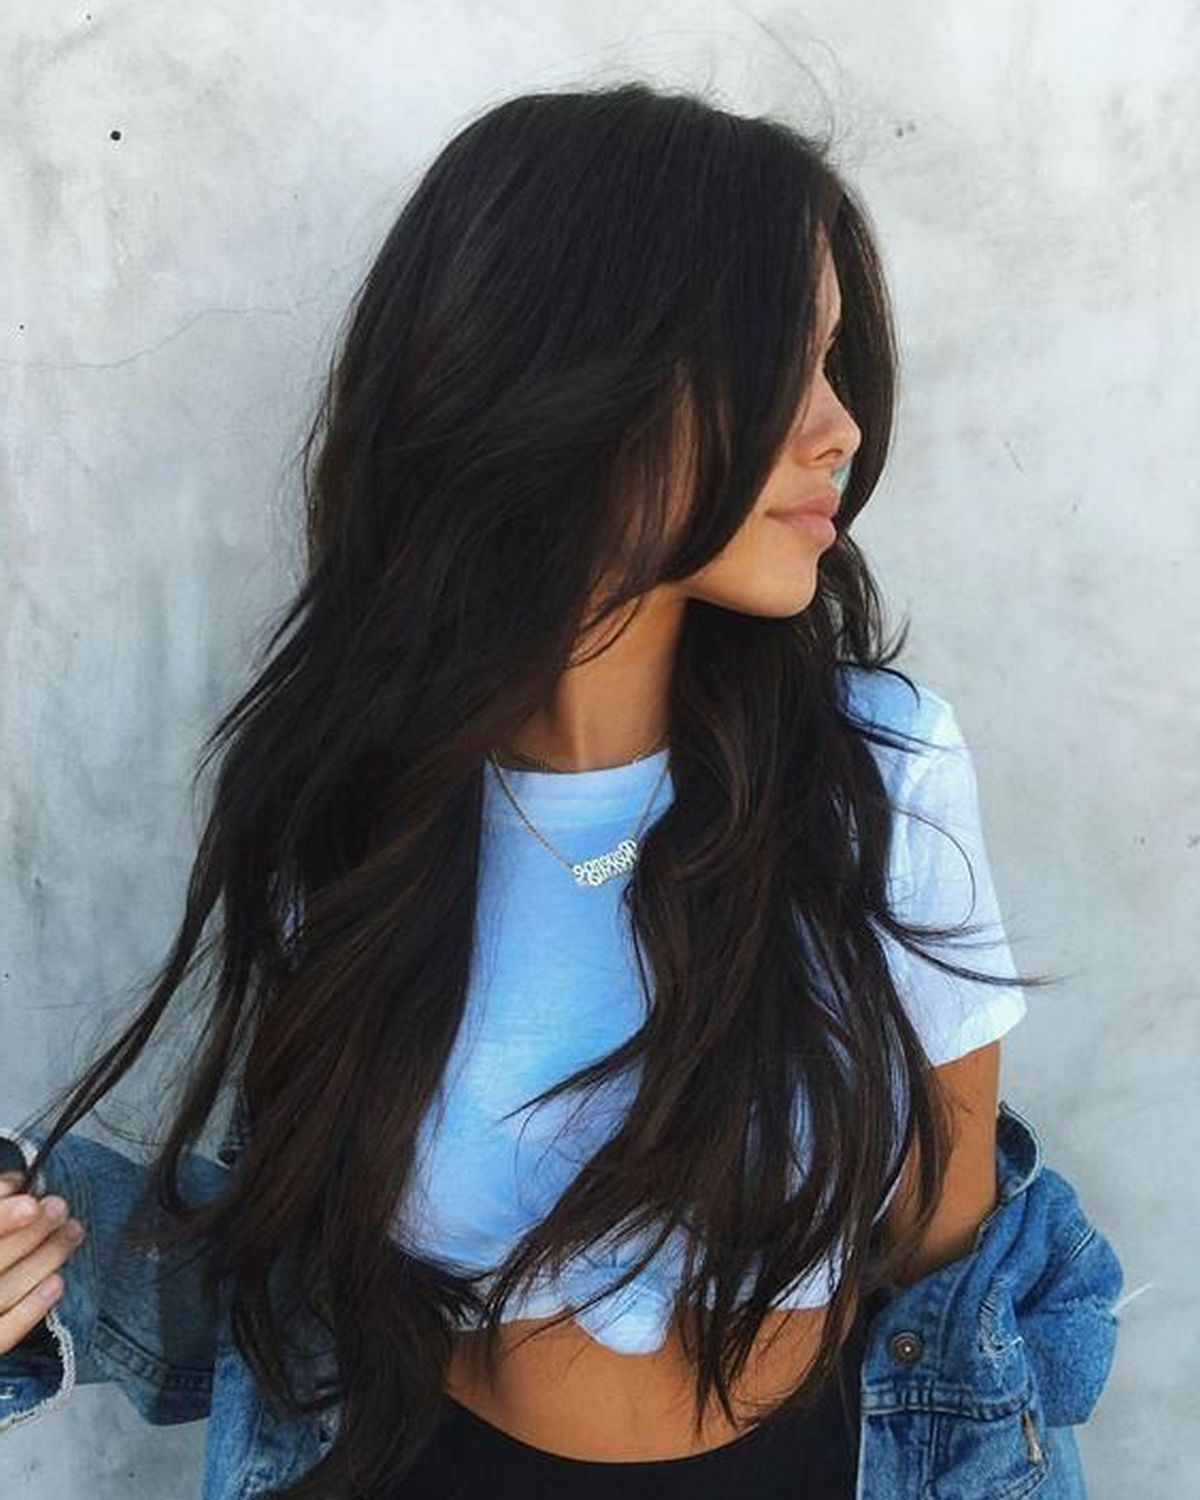 50 Stunning Hairstyles For Warm Black Hair Ideas • DressFitMe #longhair